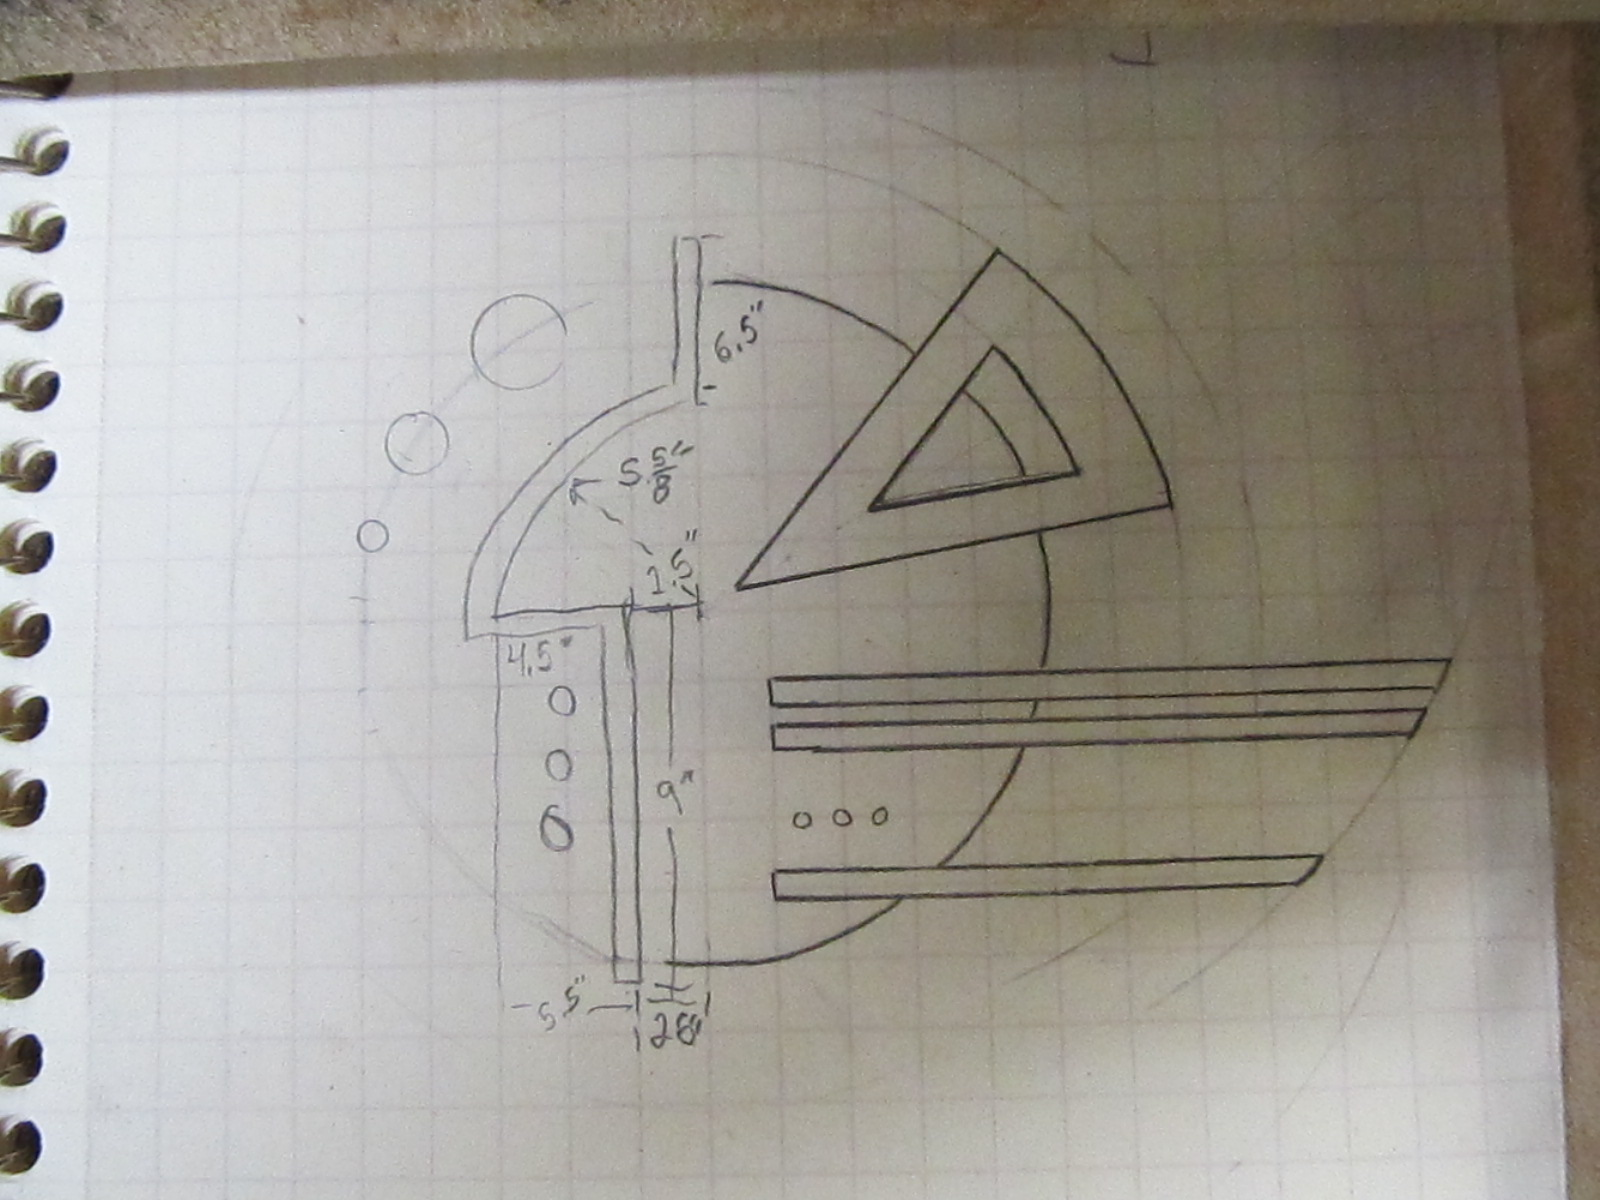 The preliminary sketch of the art deco wall hanging